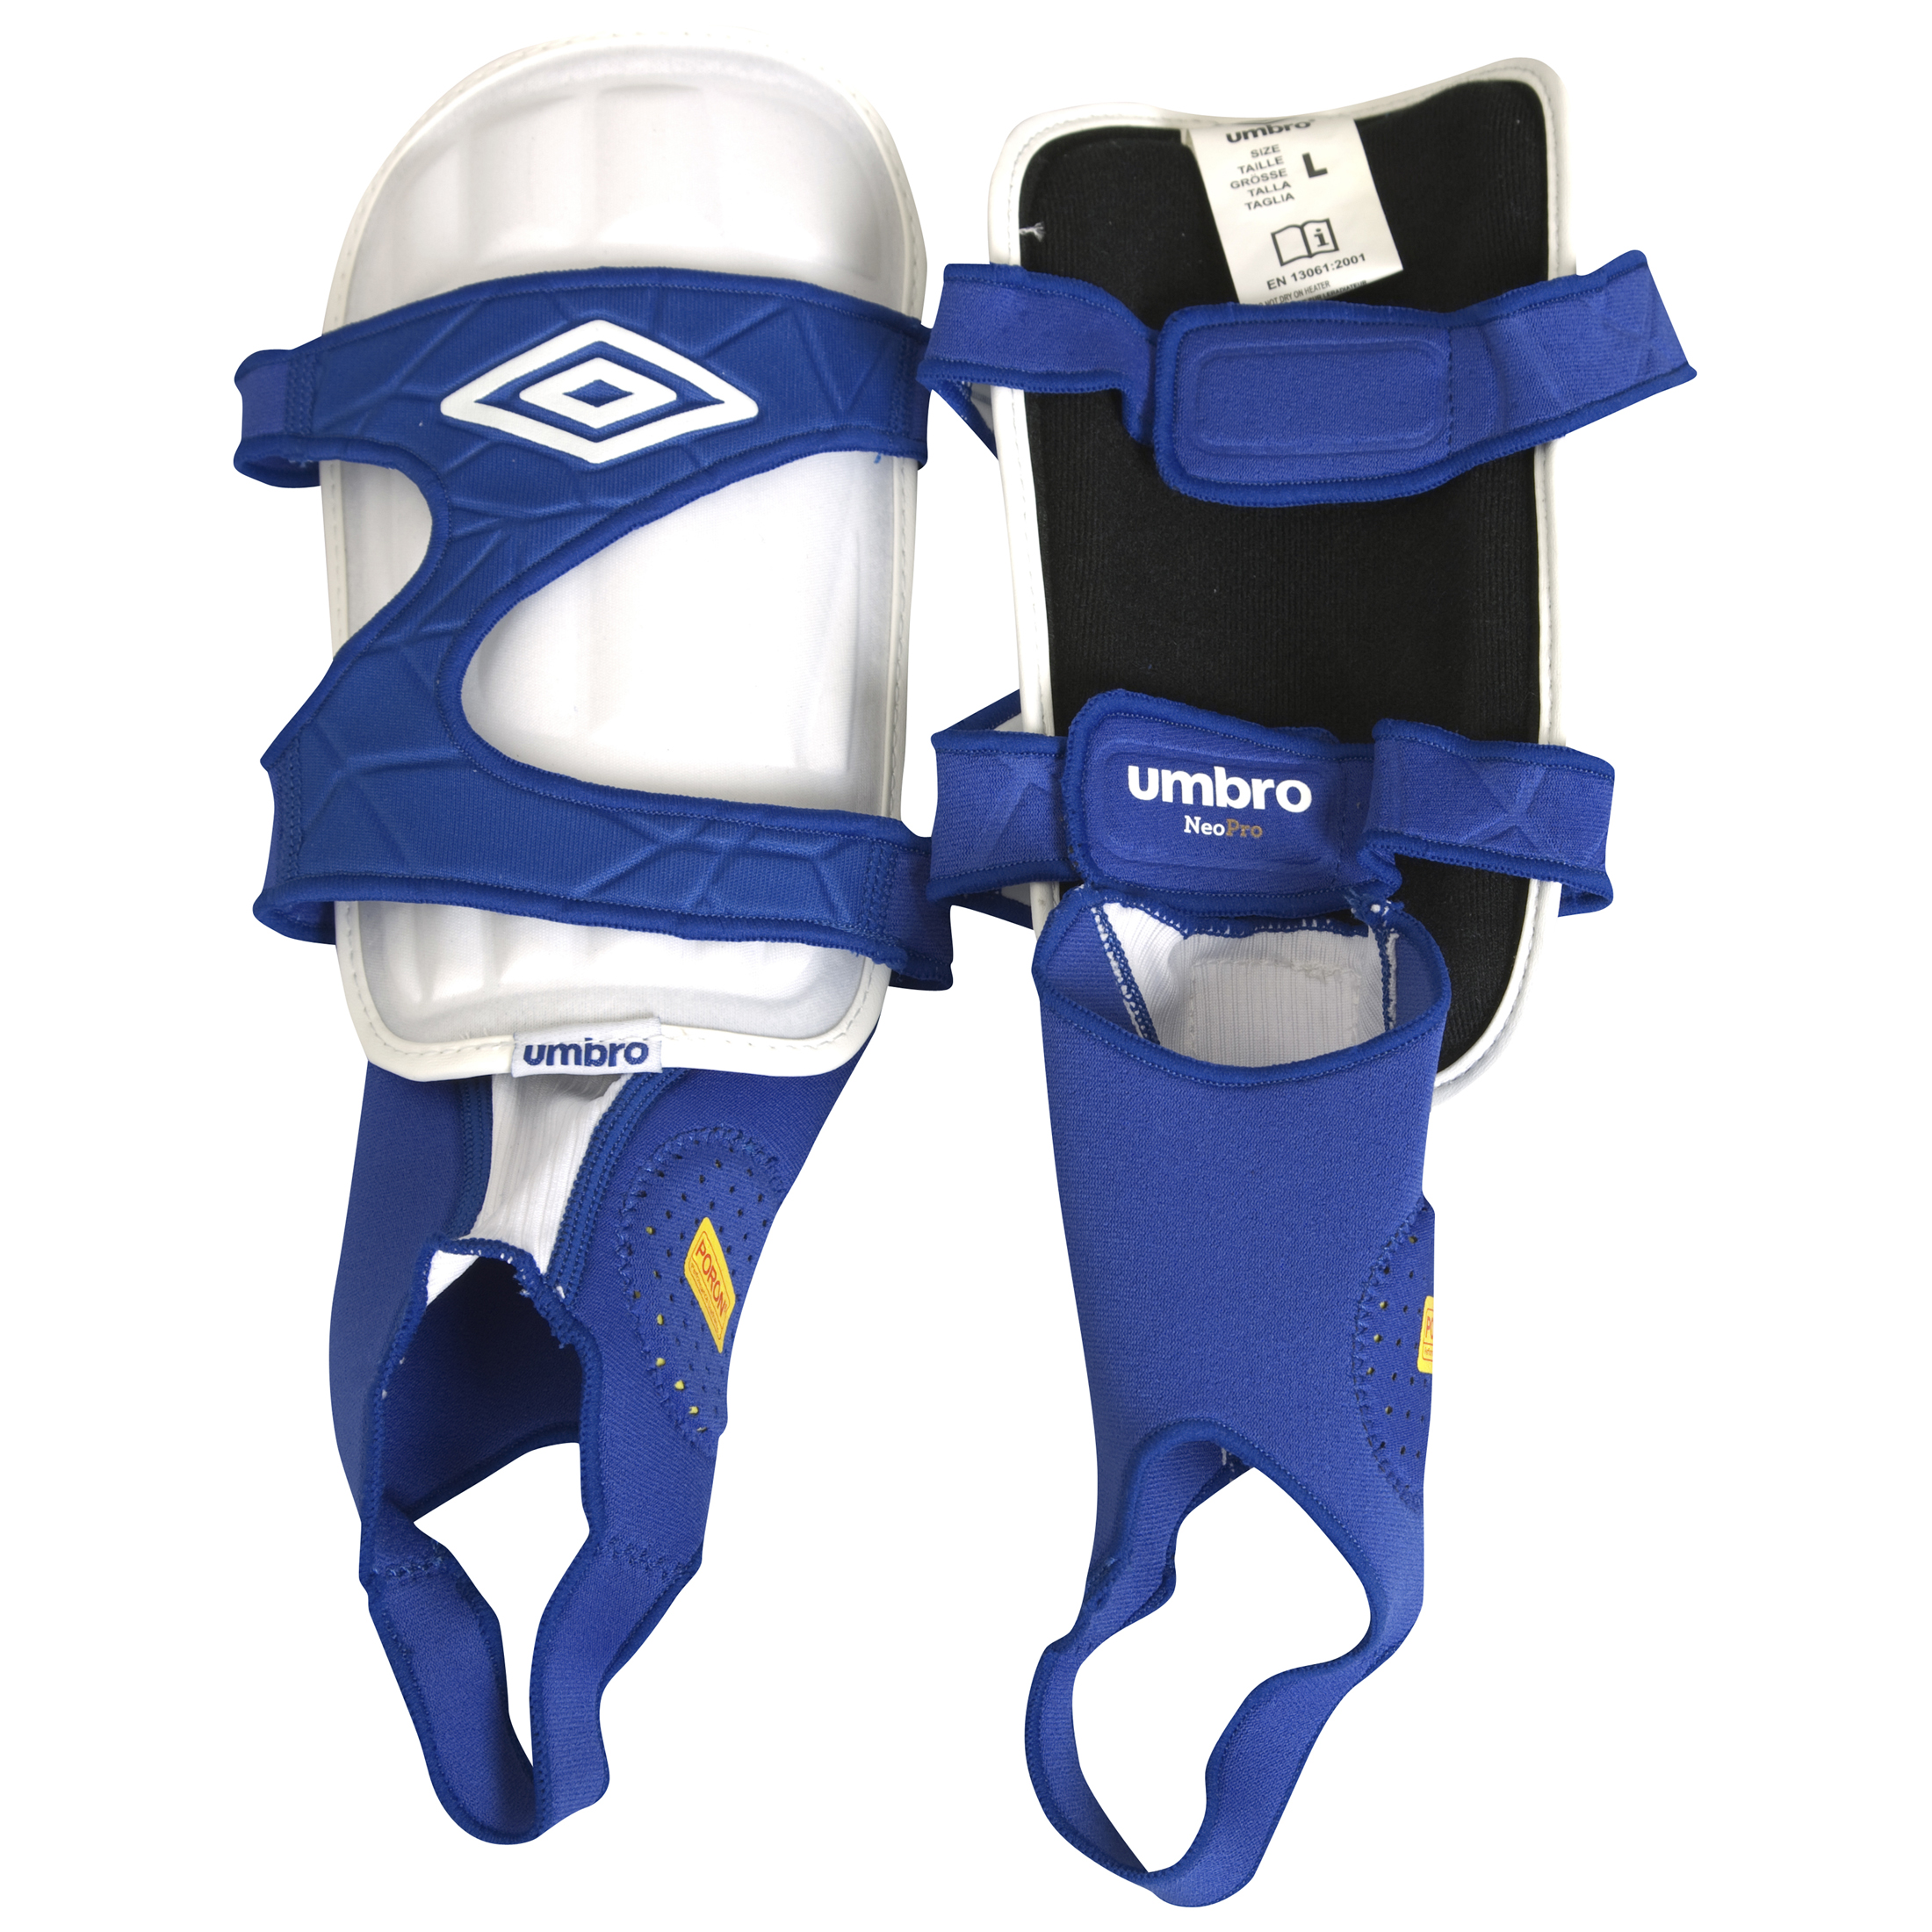 Umbro Pro Shin Guard - White/Blue